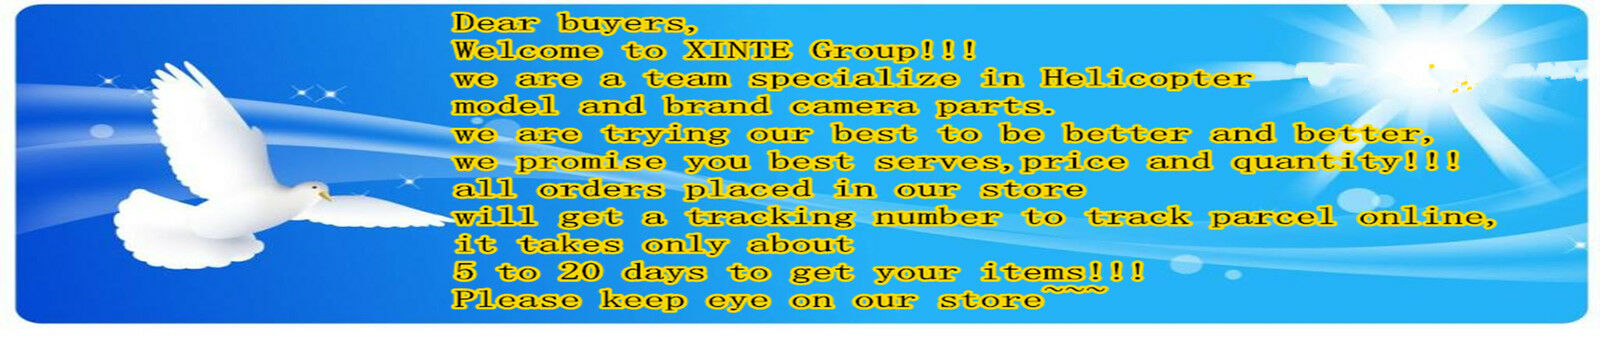 XINTE Group